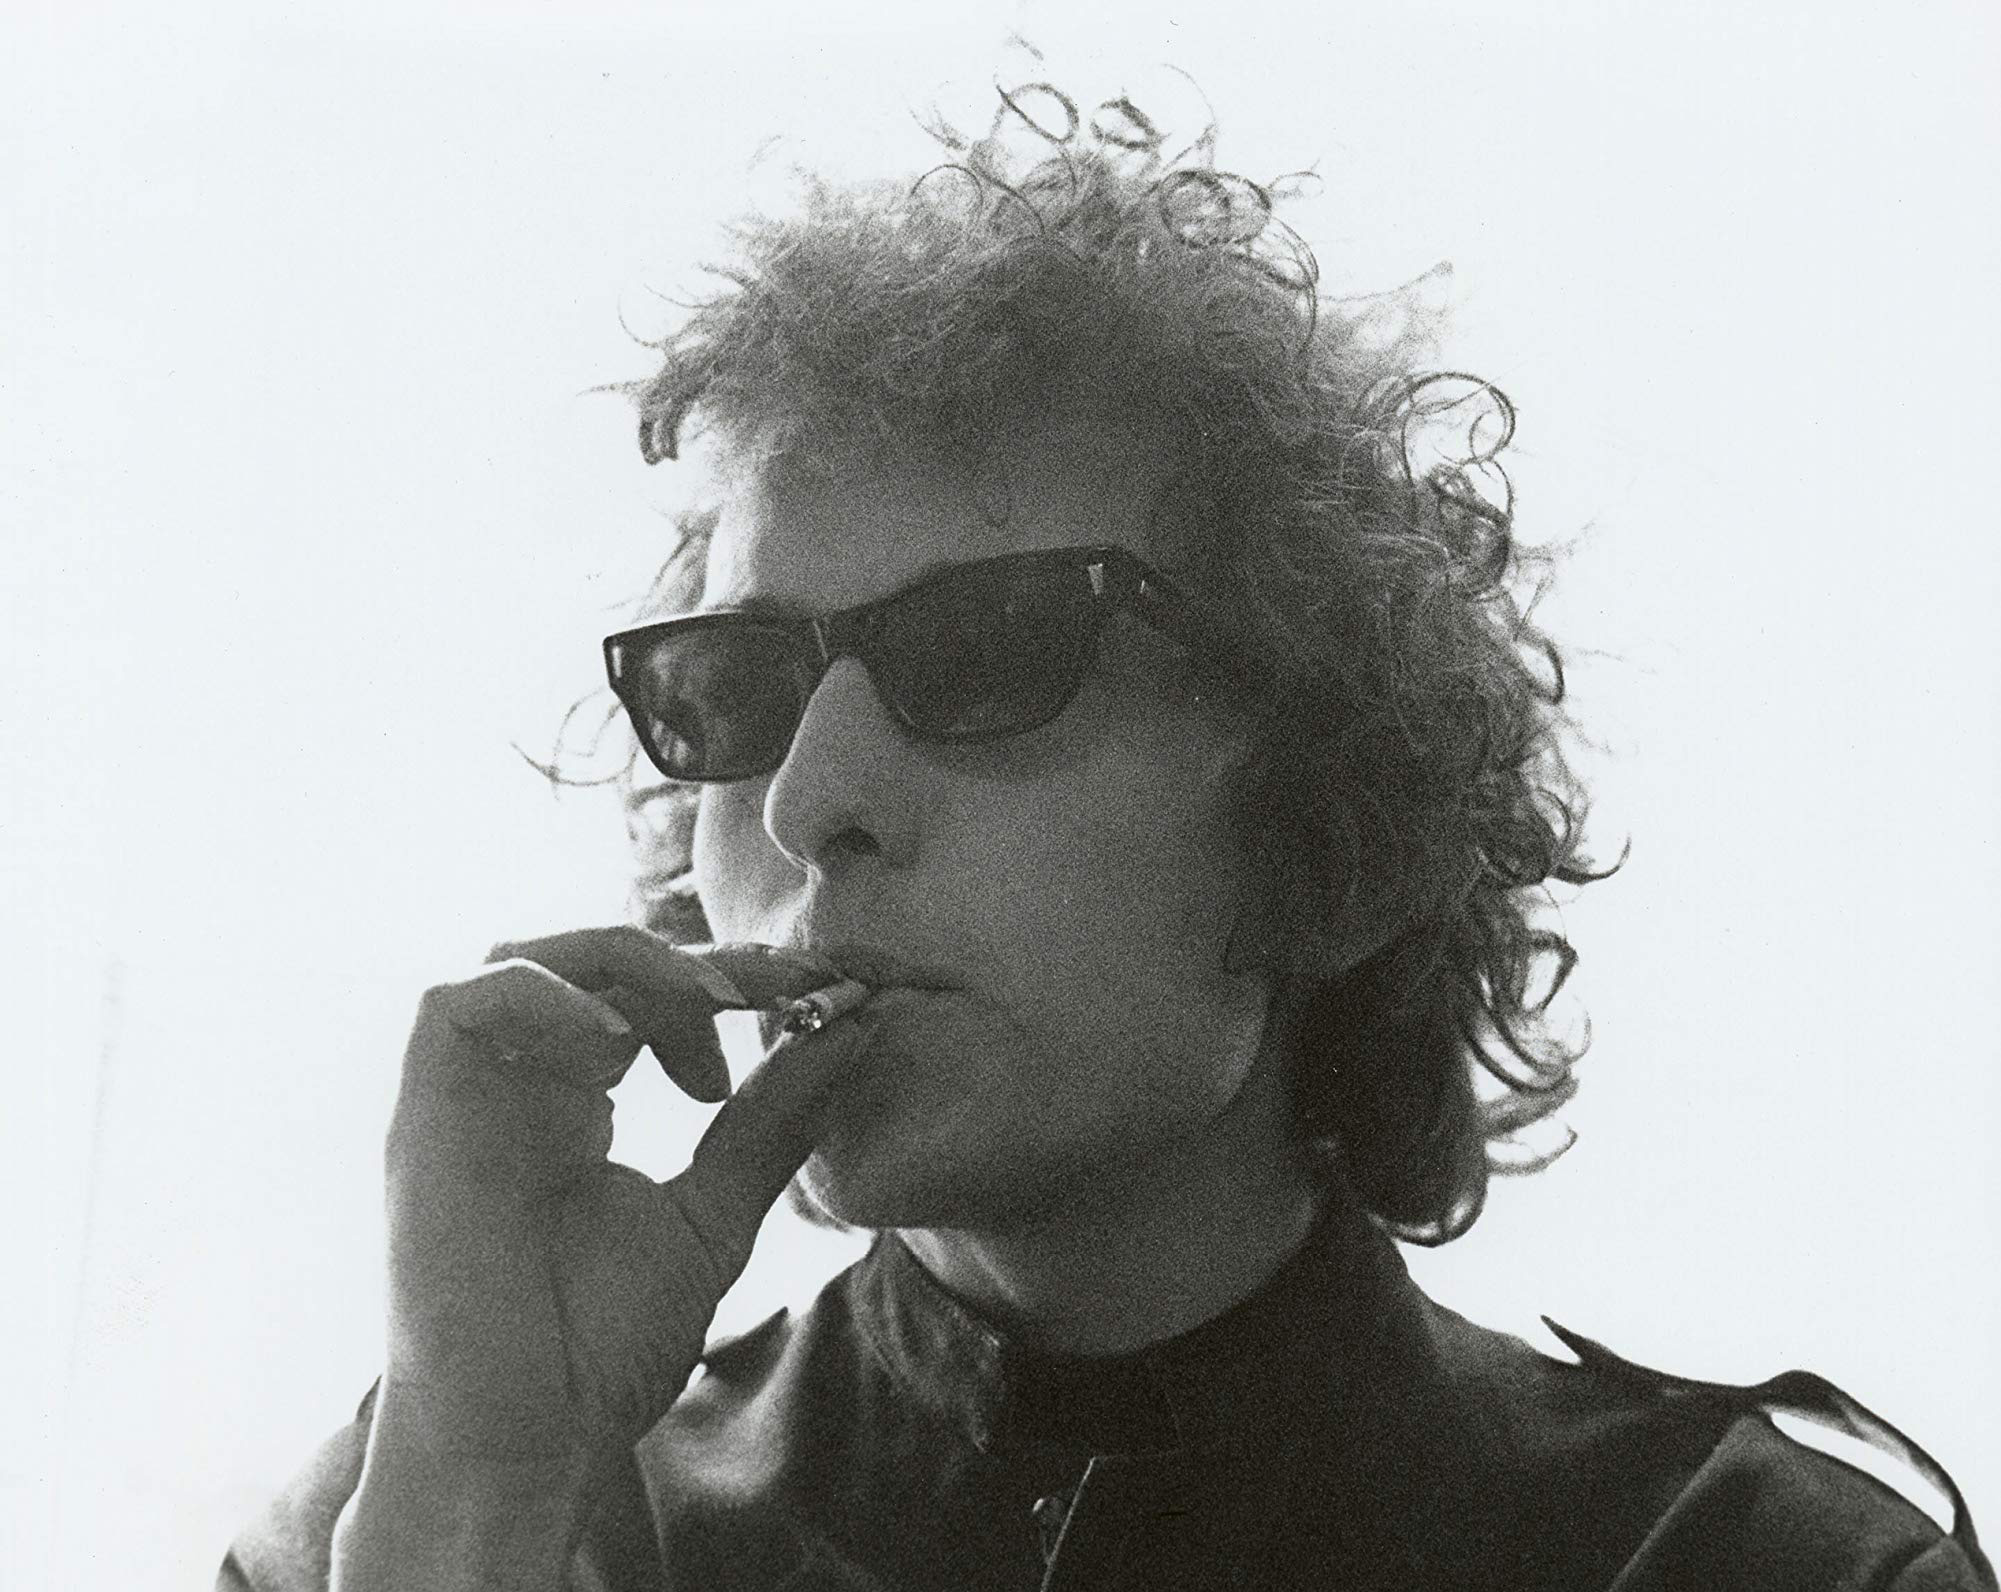 BOOK REVIEW: Bob Dylan - No Direction Home (Revised illustrated edition) By Robert Shelton 1